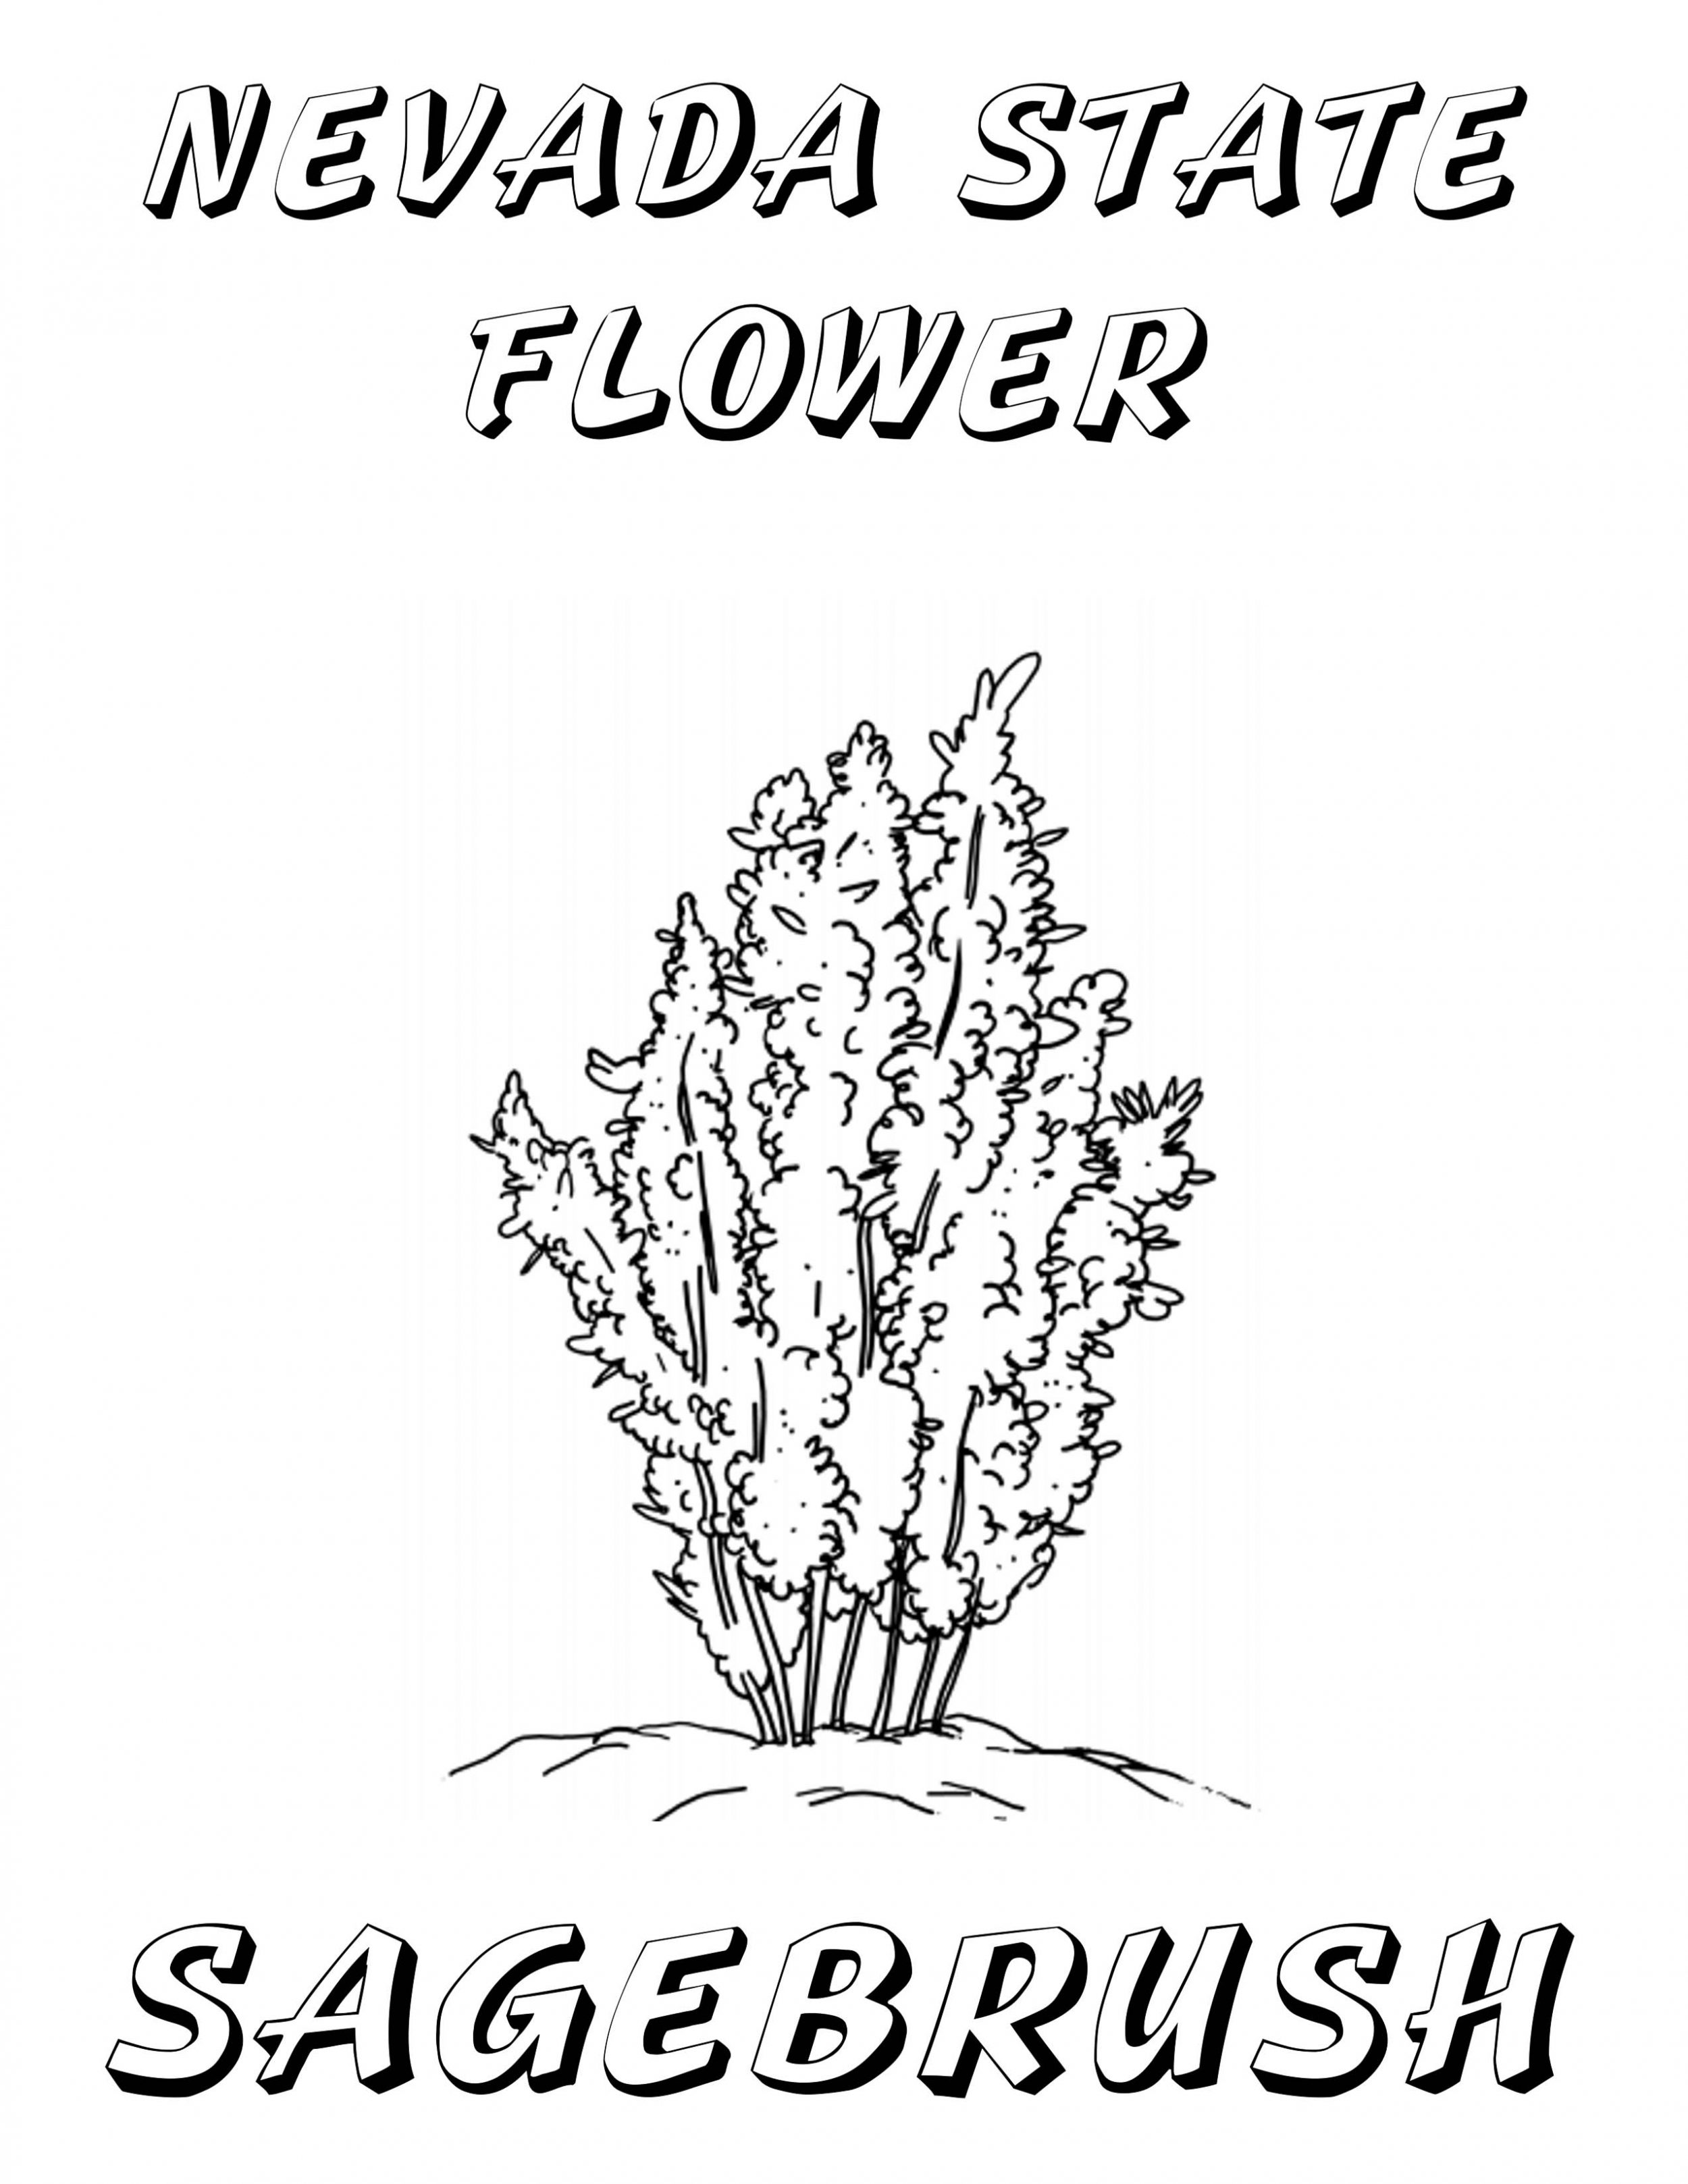 nevada state flower 50 state flowers coloring pages for kids flower state nevada